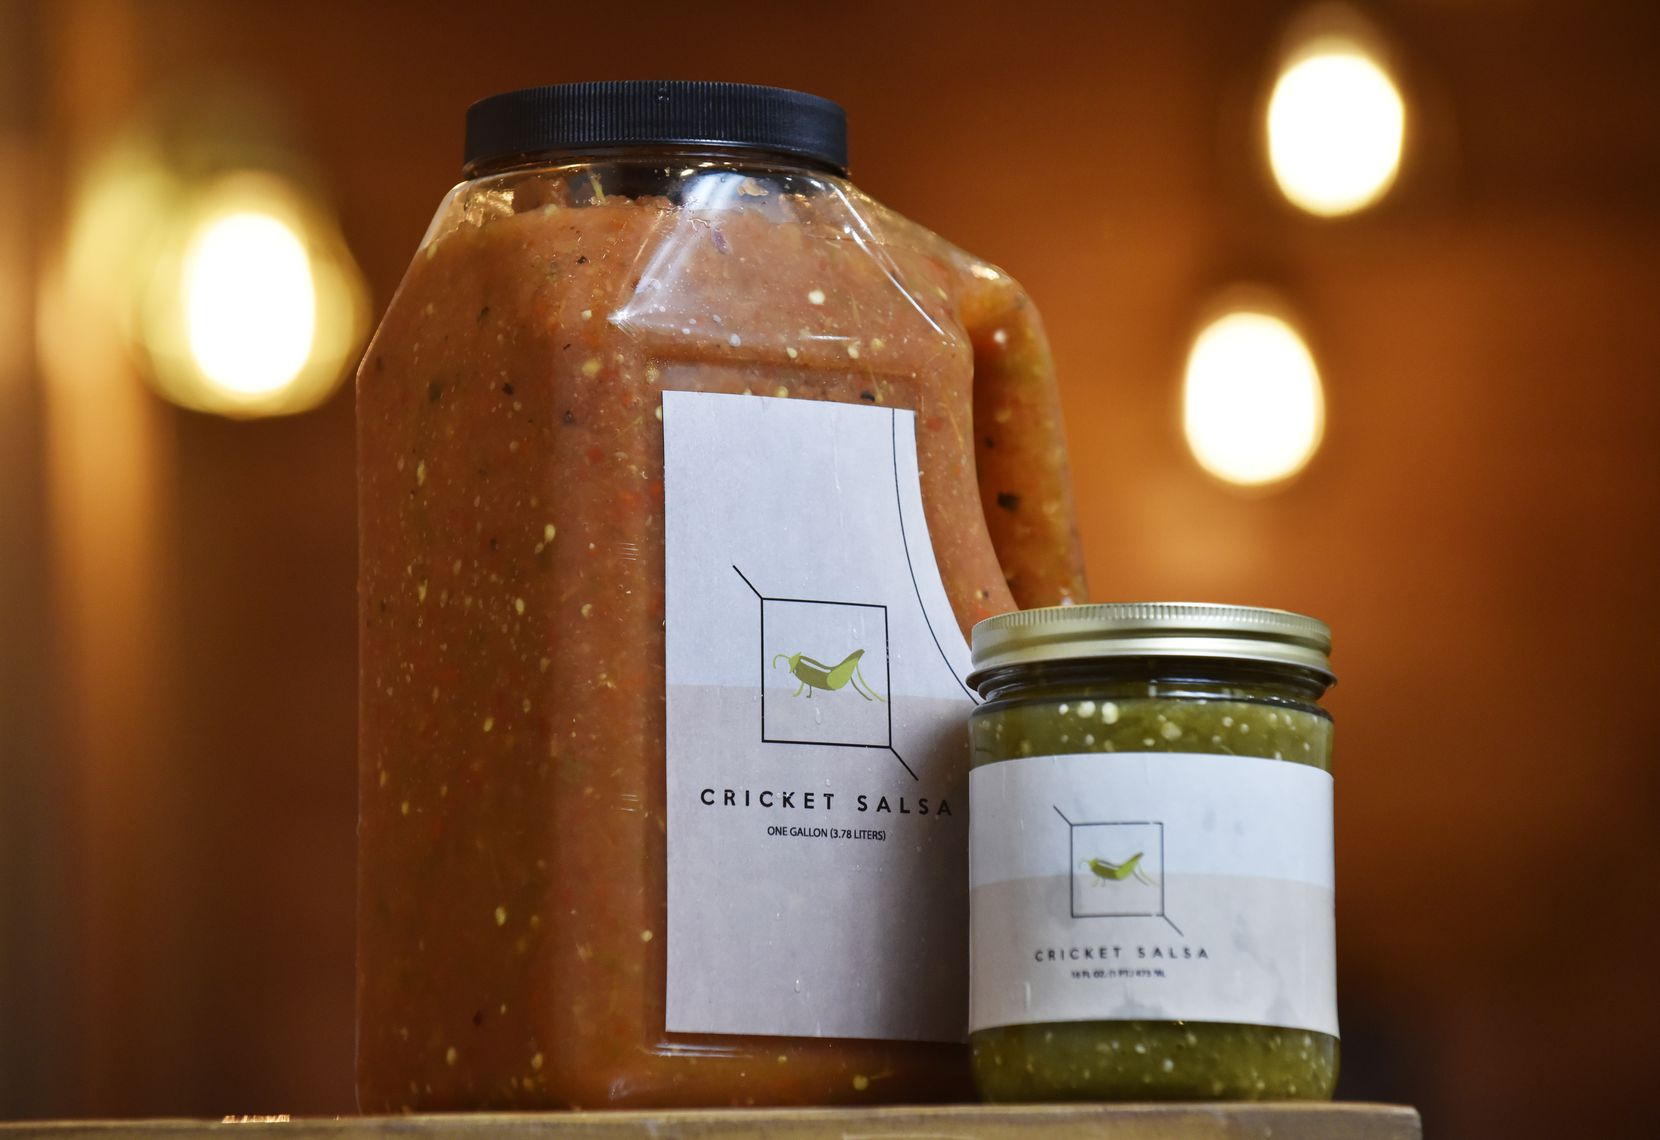 The Costilla family's Cricket Salsa red is mild, while the roasted verde is hot.